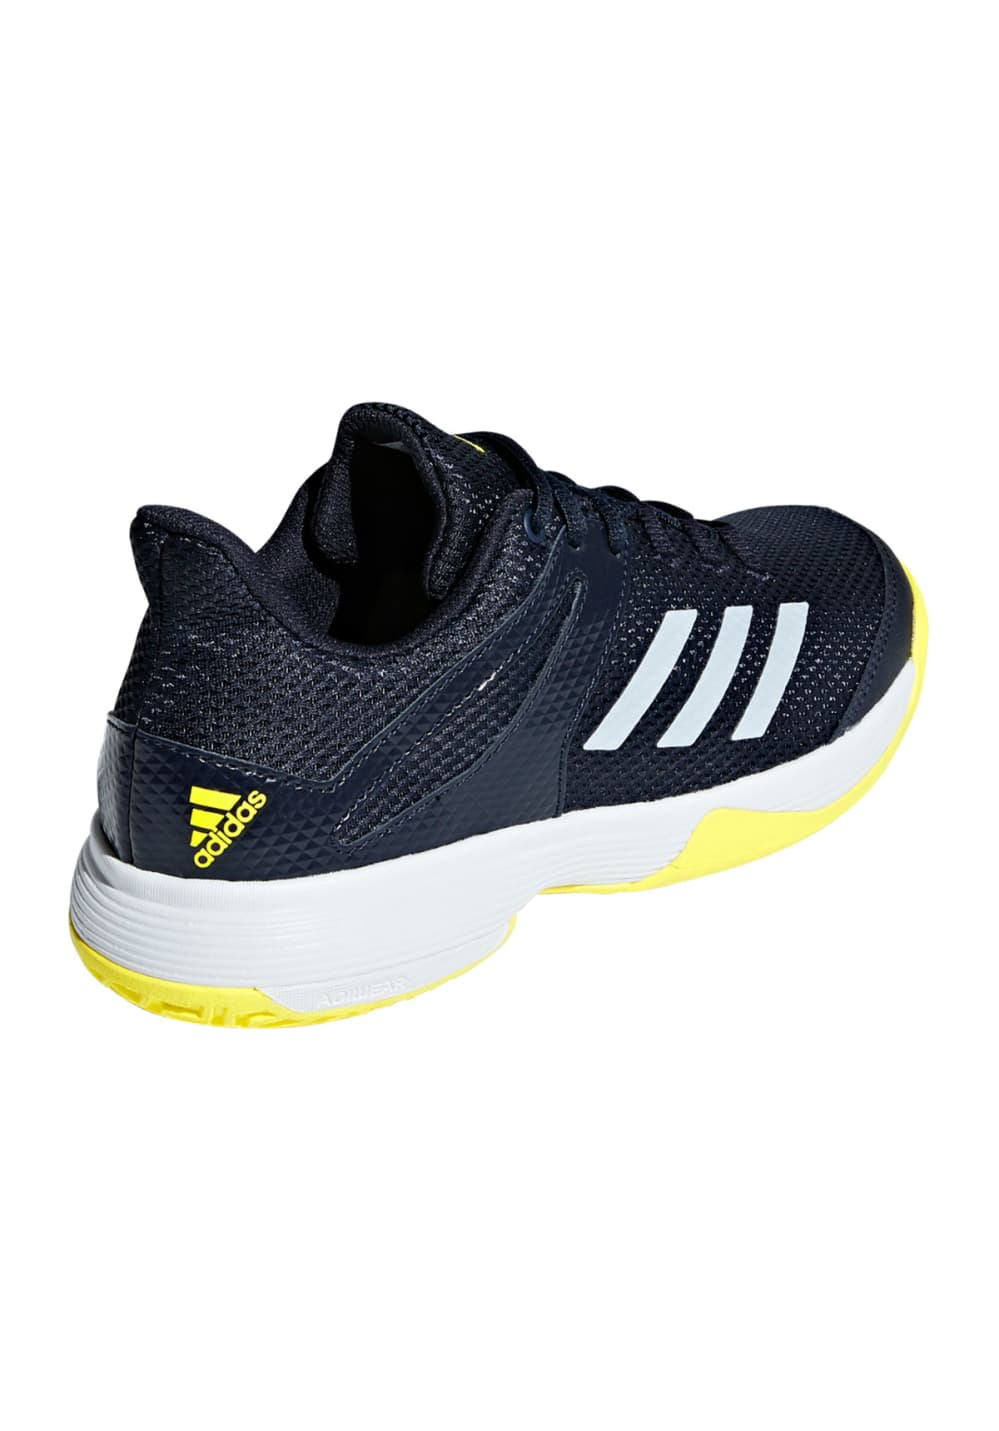 new arrivals d06f7 8a306 adidas adiZero Club K - Tennisschuhe - Blau  21RUN